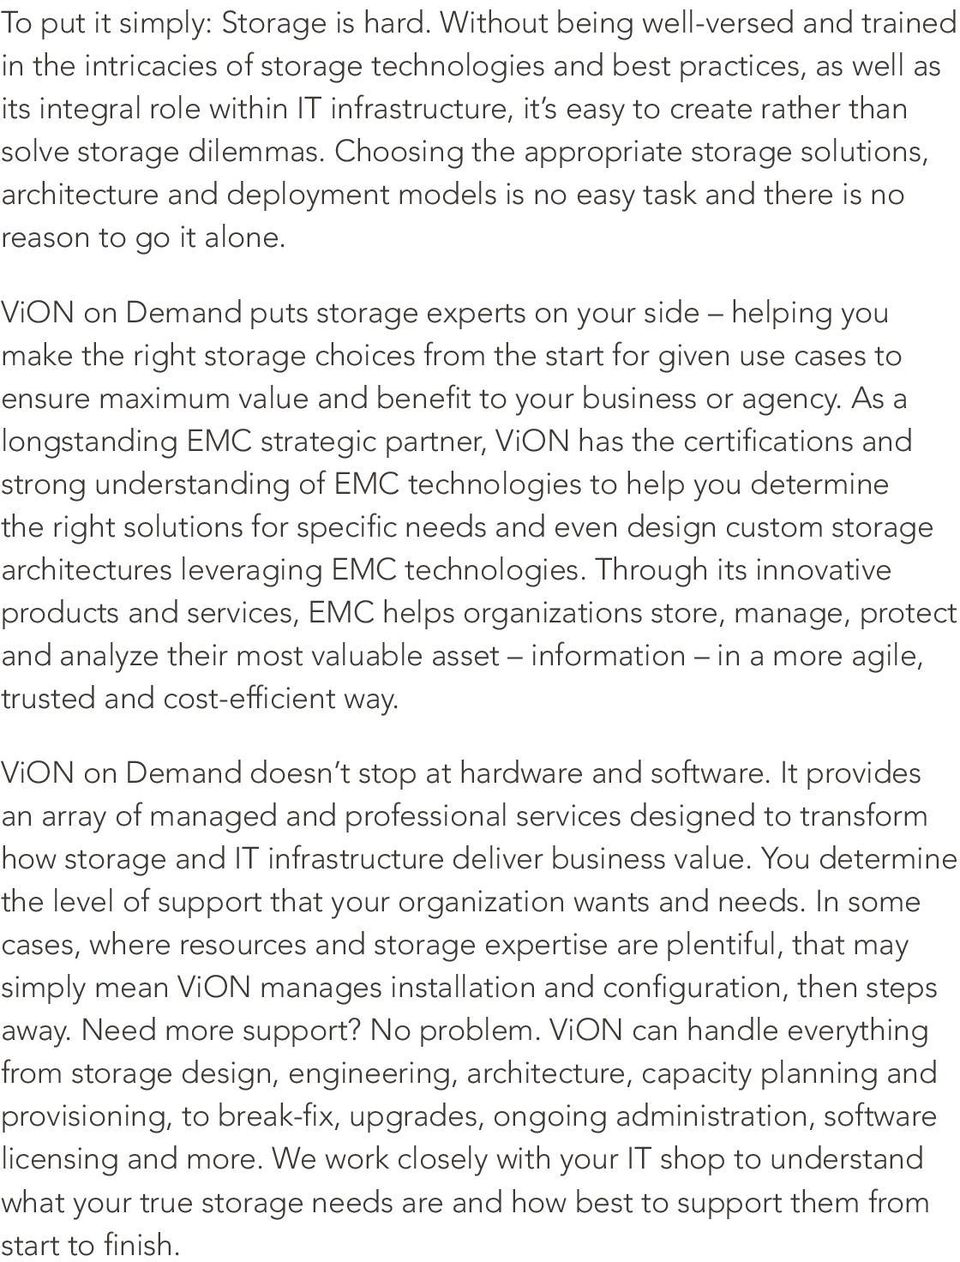 storage dilemmas. Choosing the appropriate storage solutions, architecture and deployment models is no easy task and there is no reason to go it alone.